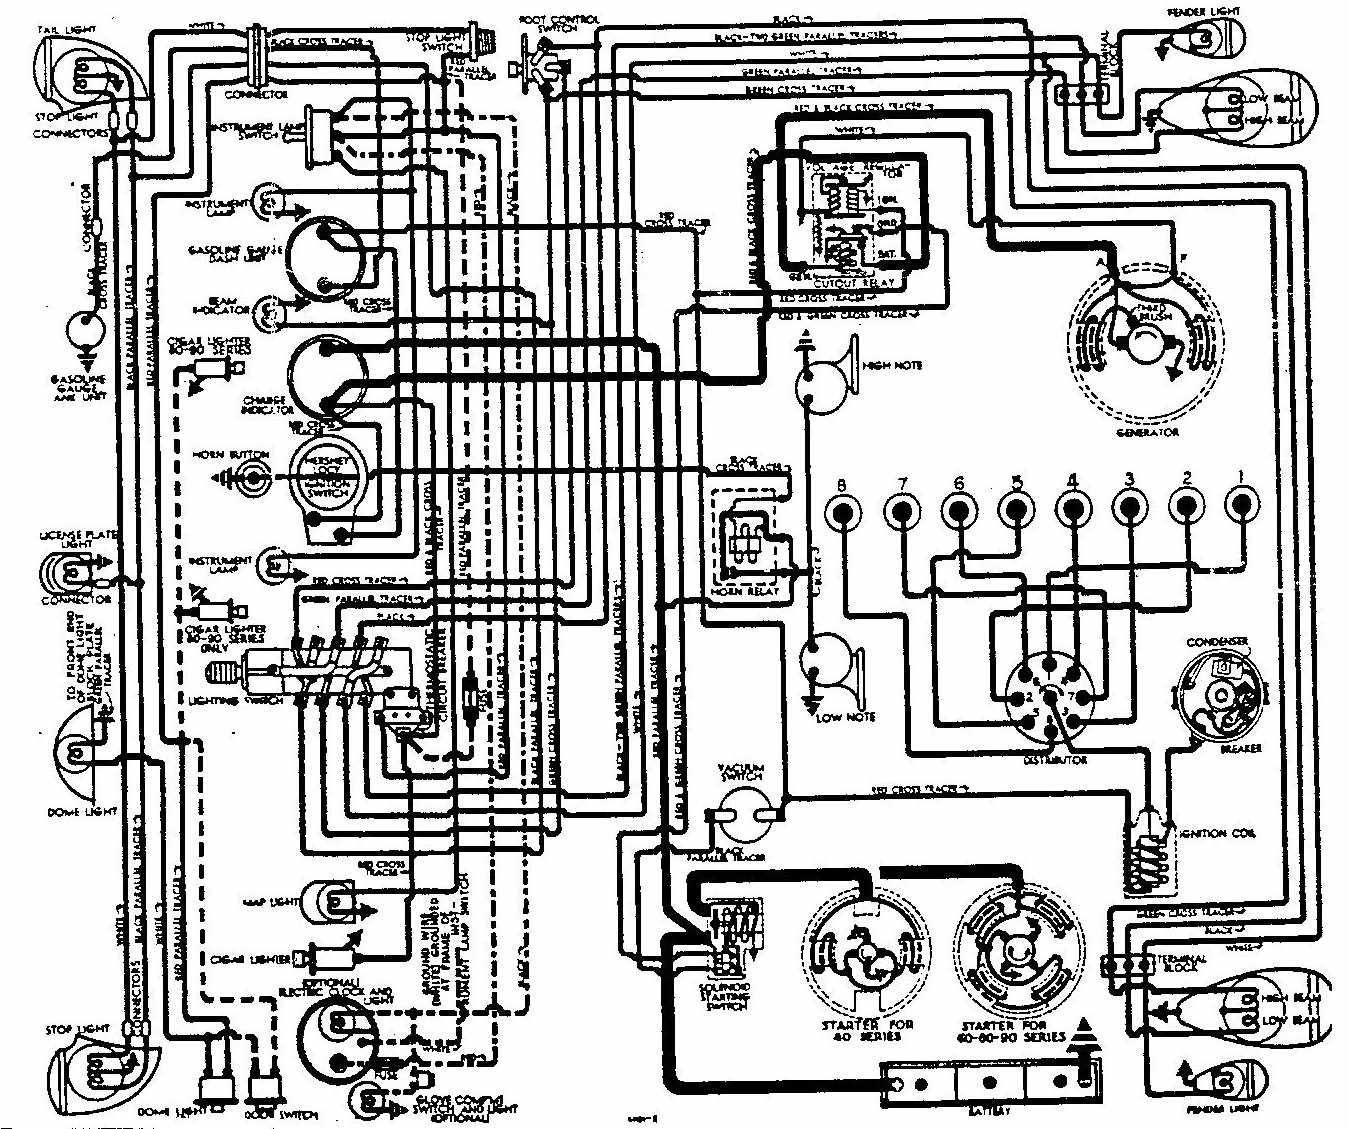 Roadmaster Wiring Diode Diagram Buick Roadmaster Electrical Wiring Diagram All About Wiring Rh Diagramonwiring Q furthermore Ford V Deluxe Window Coupe also Buick Roadmaster Convertible further D Roadmaster Trailer For Sale X Trailer in addition Gmb Toc. on 1938 buick roadmaster wiring diagram